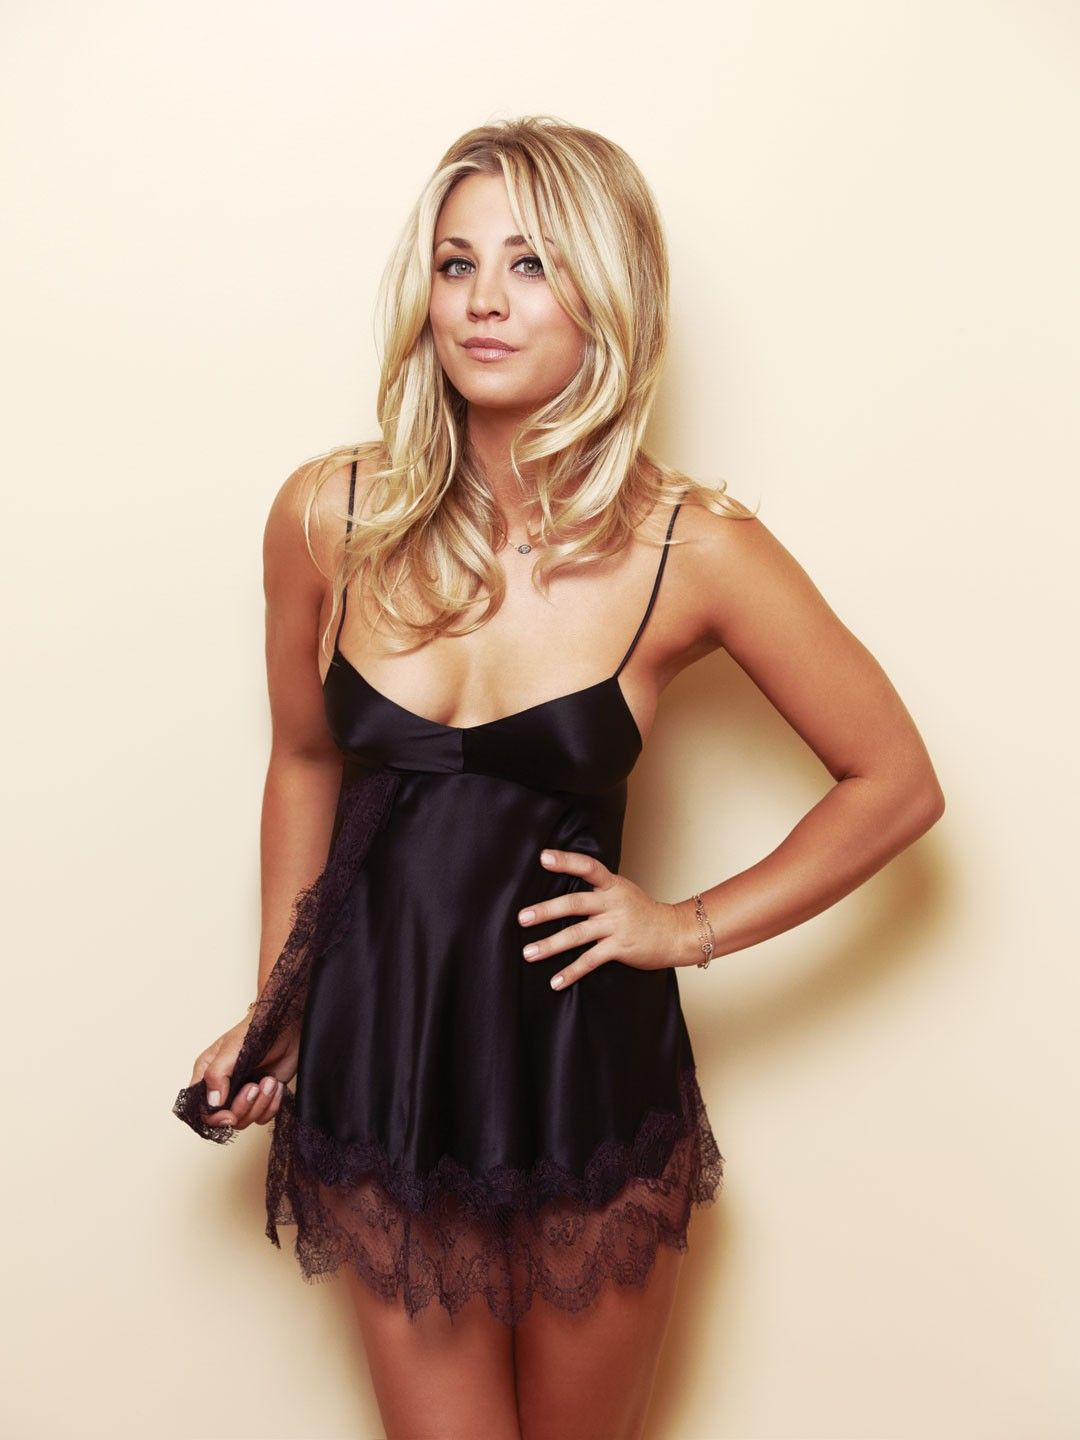 Kaley Cuoco | Kaley Cuoco – Esquire-09 - Full Size | Favorites ...